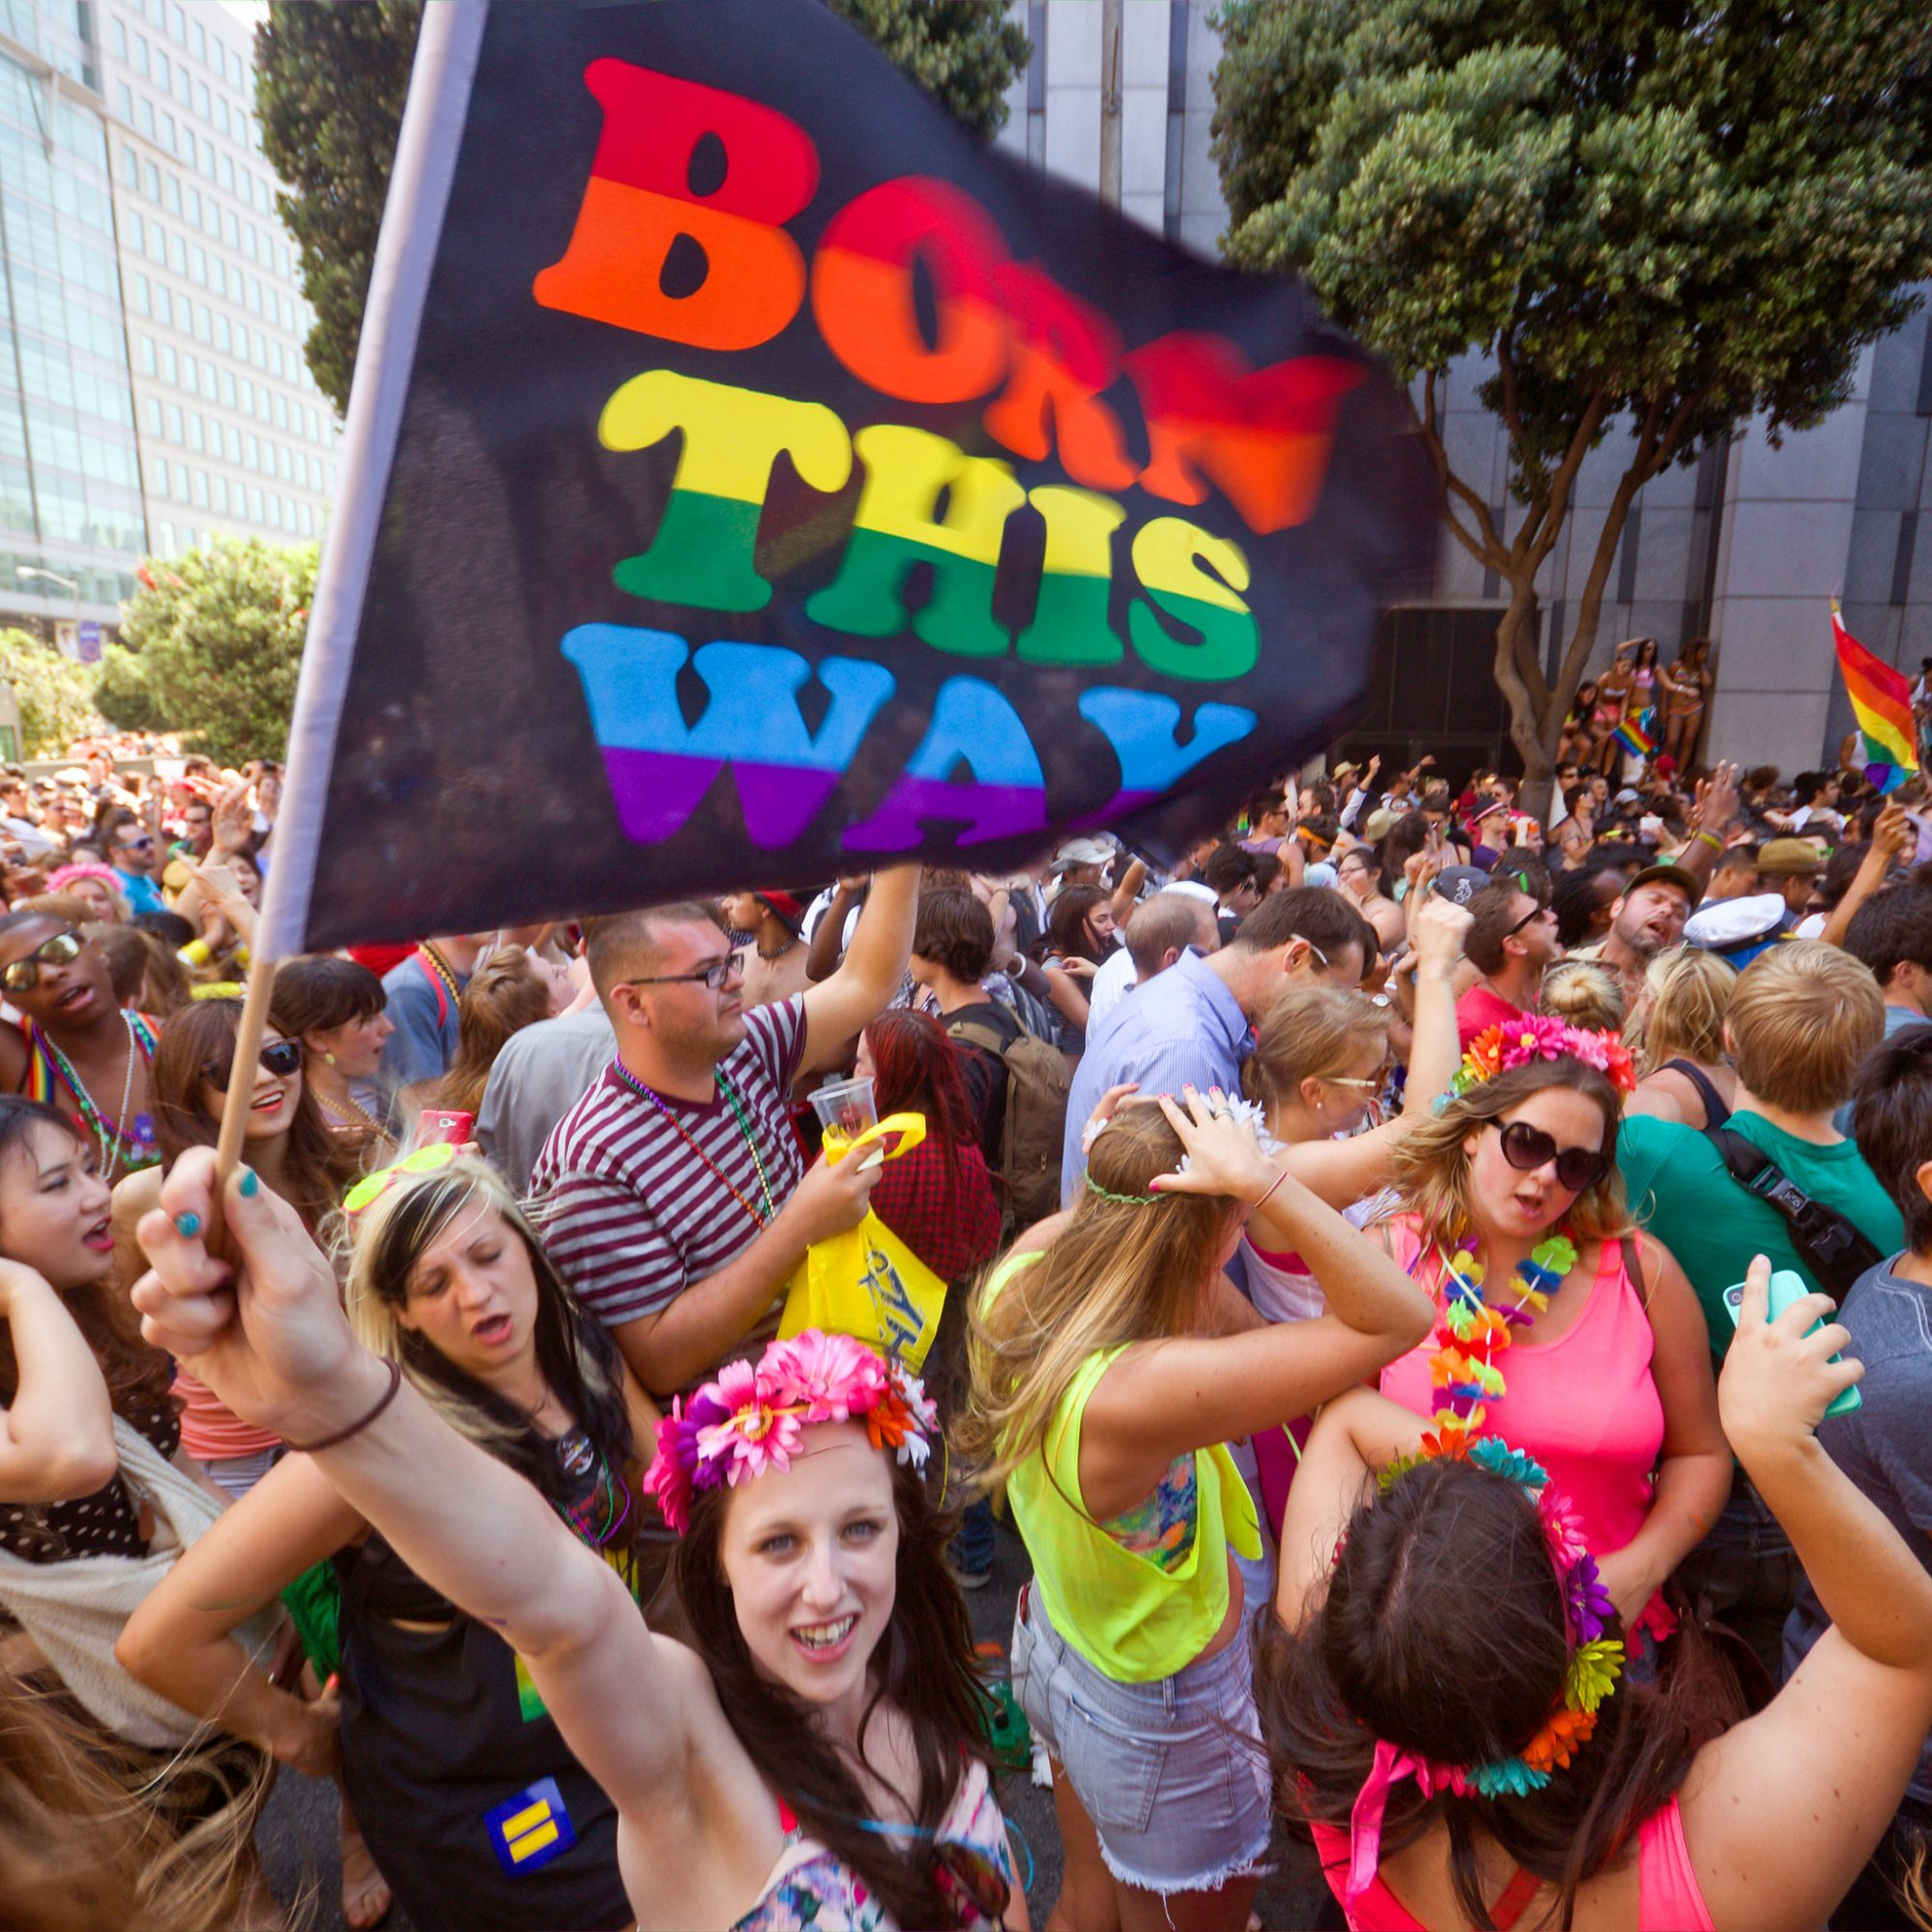 san francisco-lgbt-pride-events-fwx